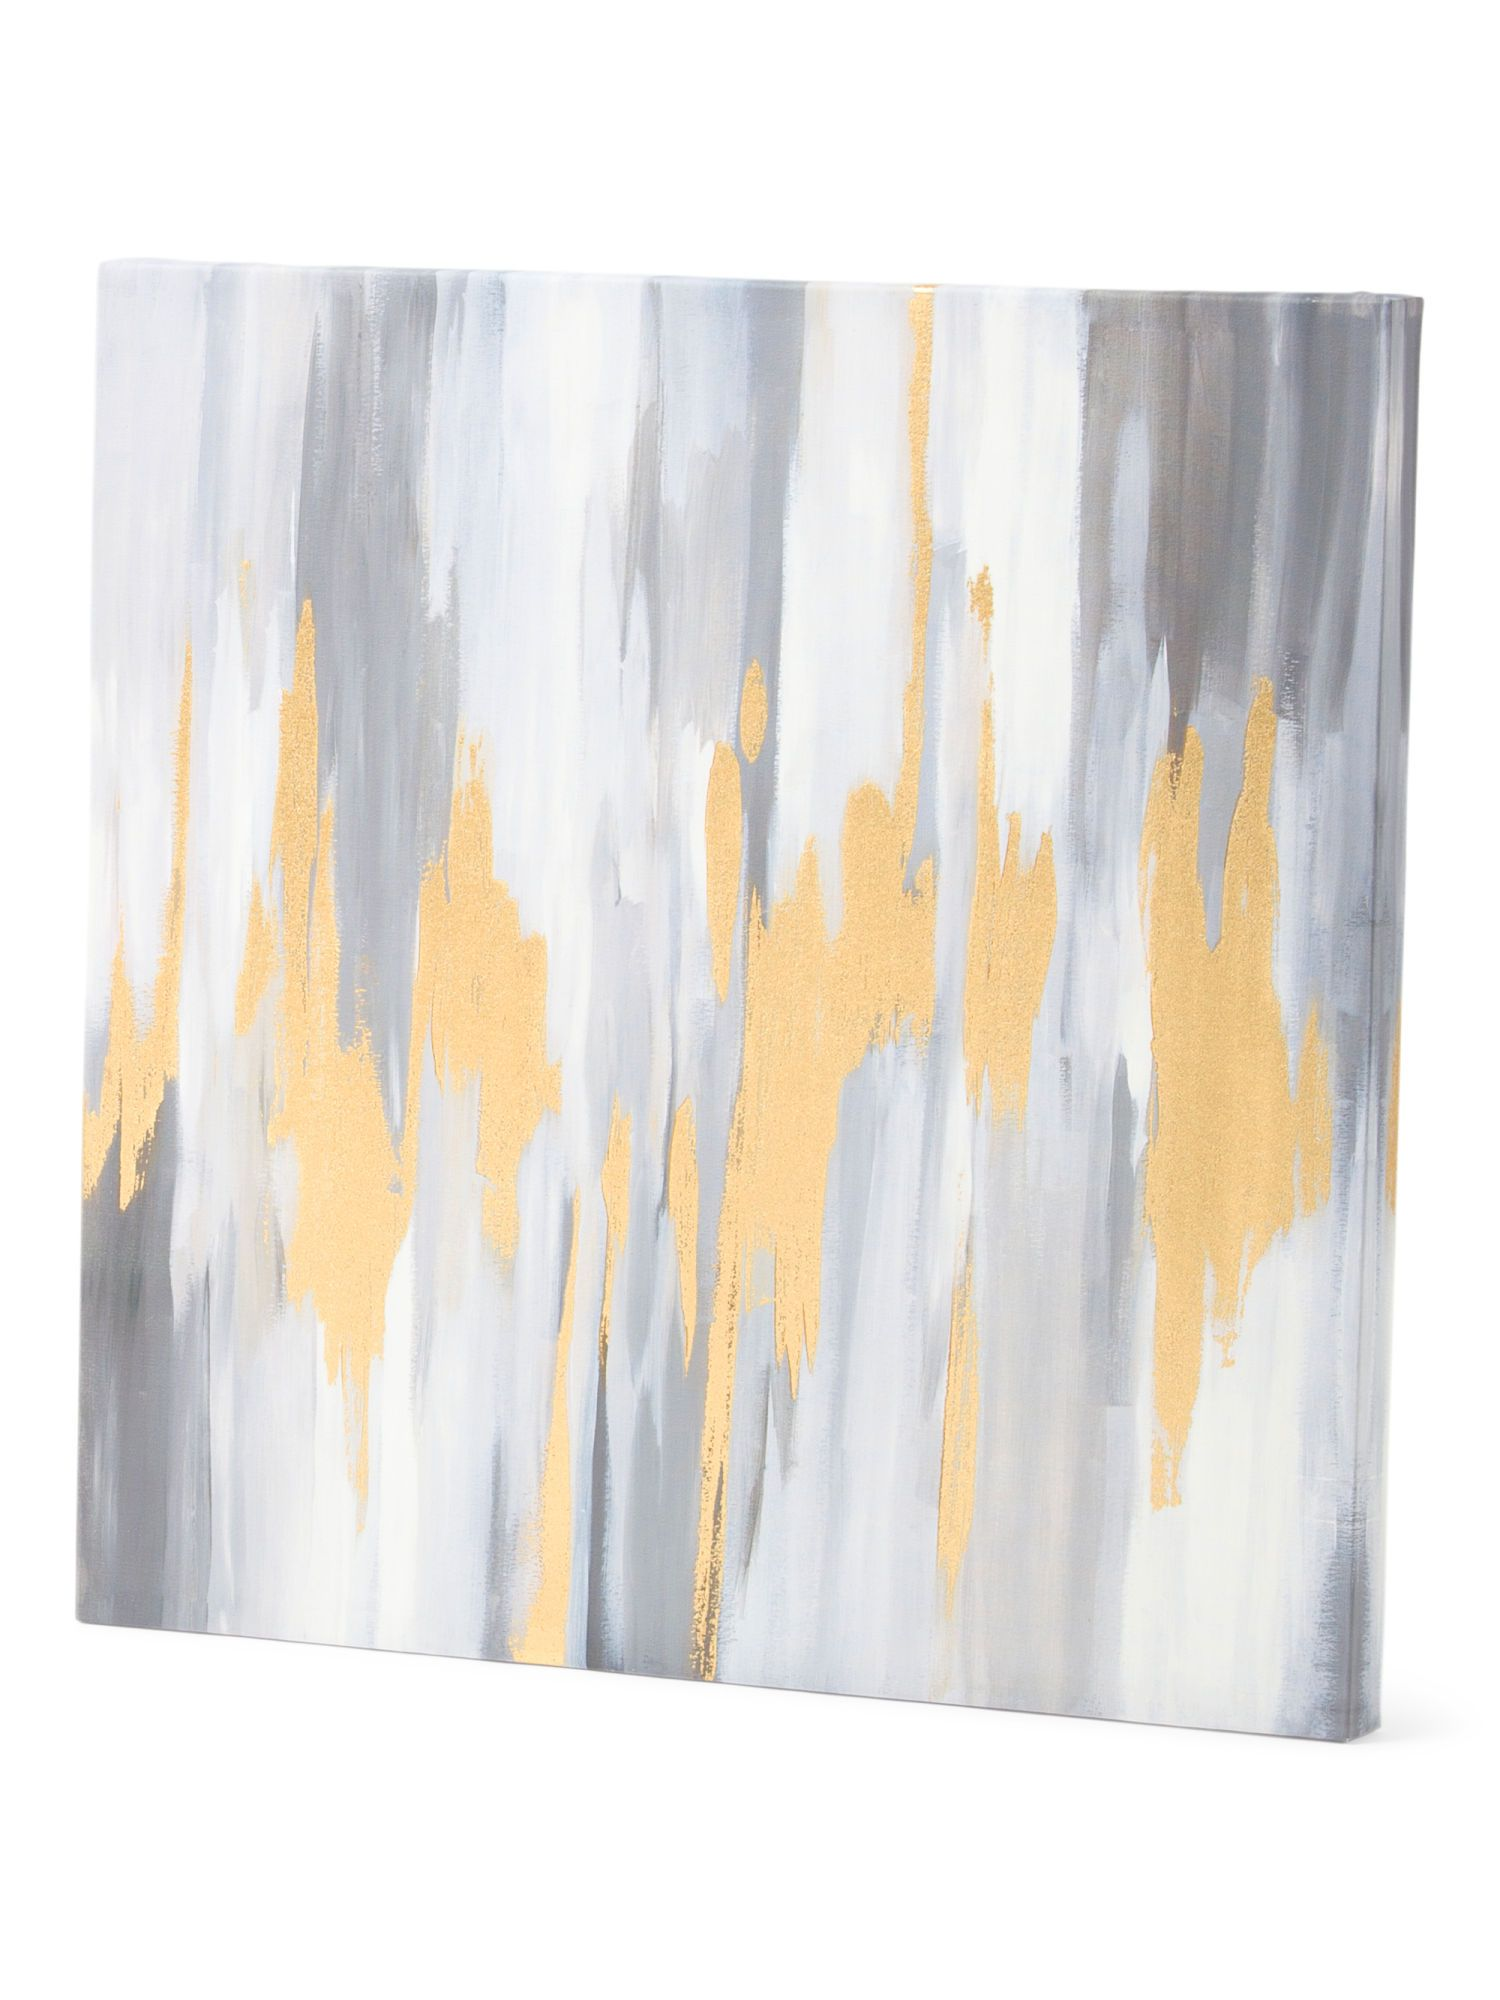 Gold Foil Wall Art 24x24 gray abstract wall art with gold foil - wall decor - t.j.